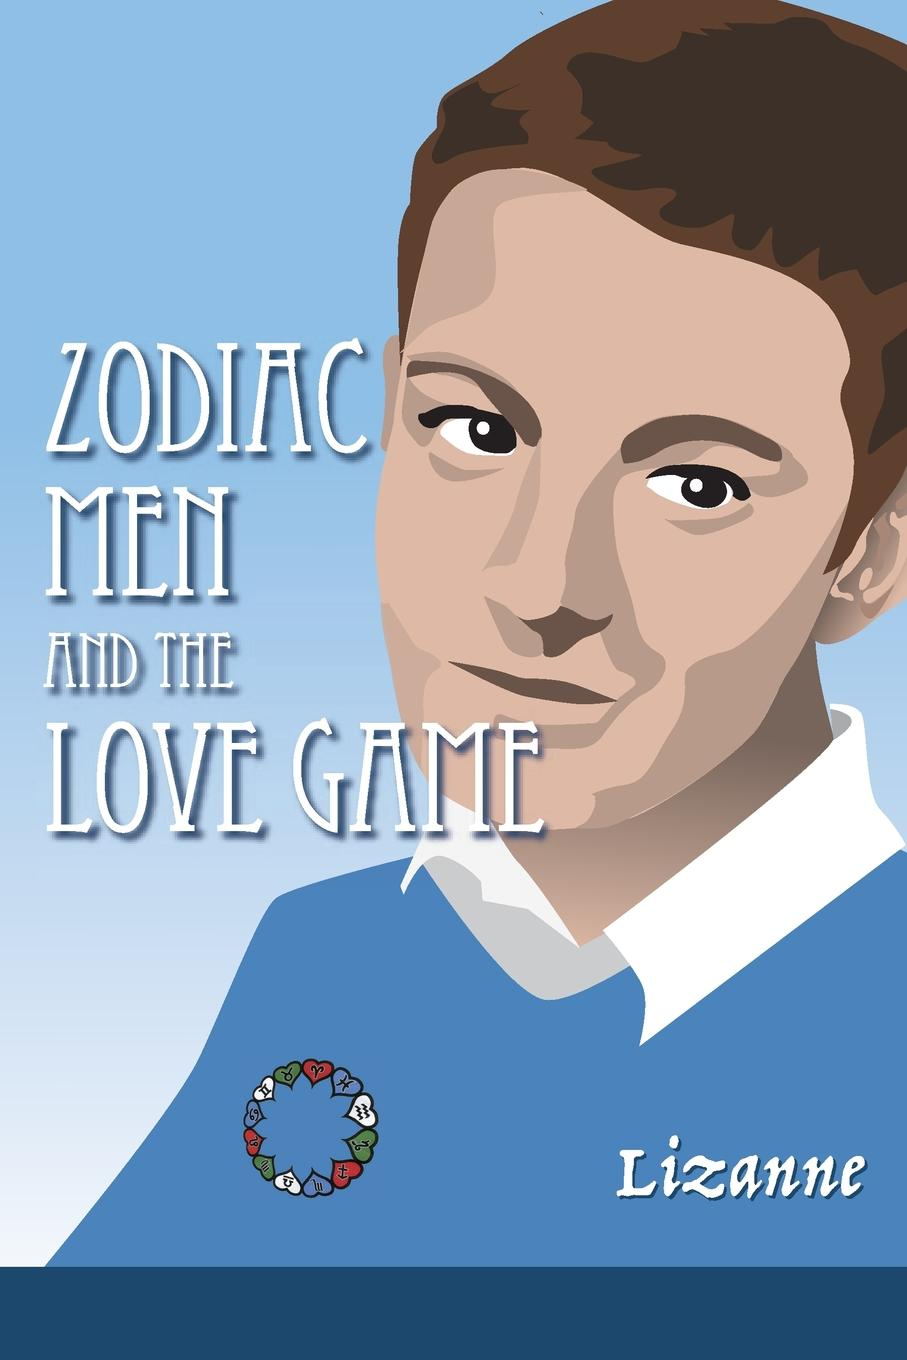 Lizanne Zodiac Men and the Love Game